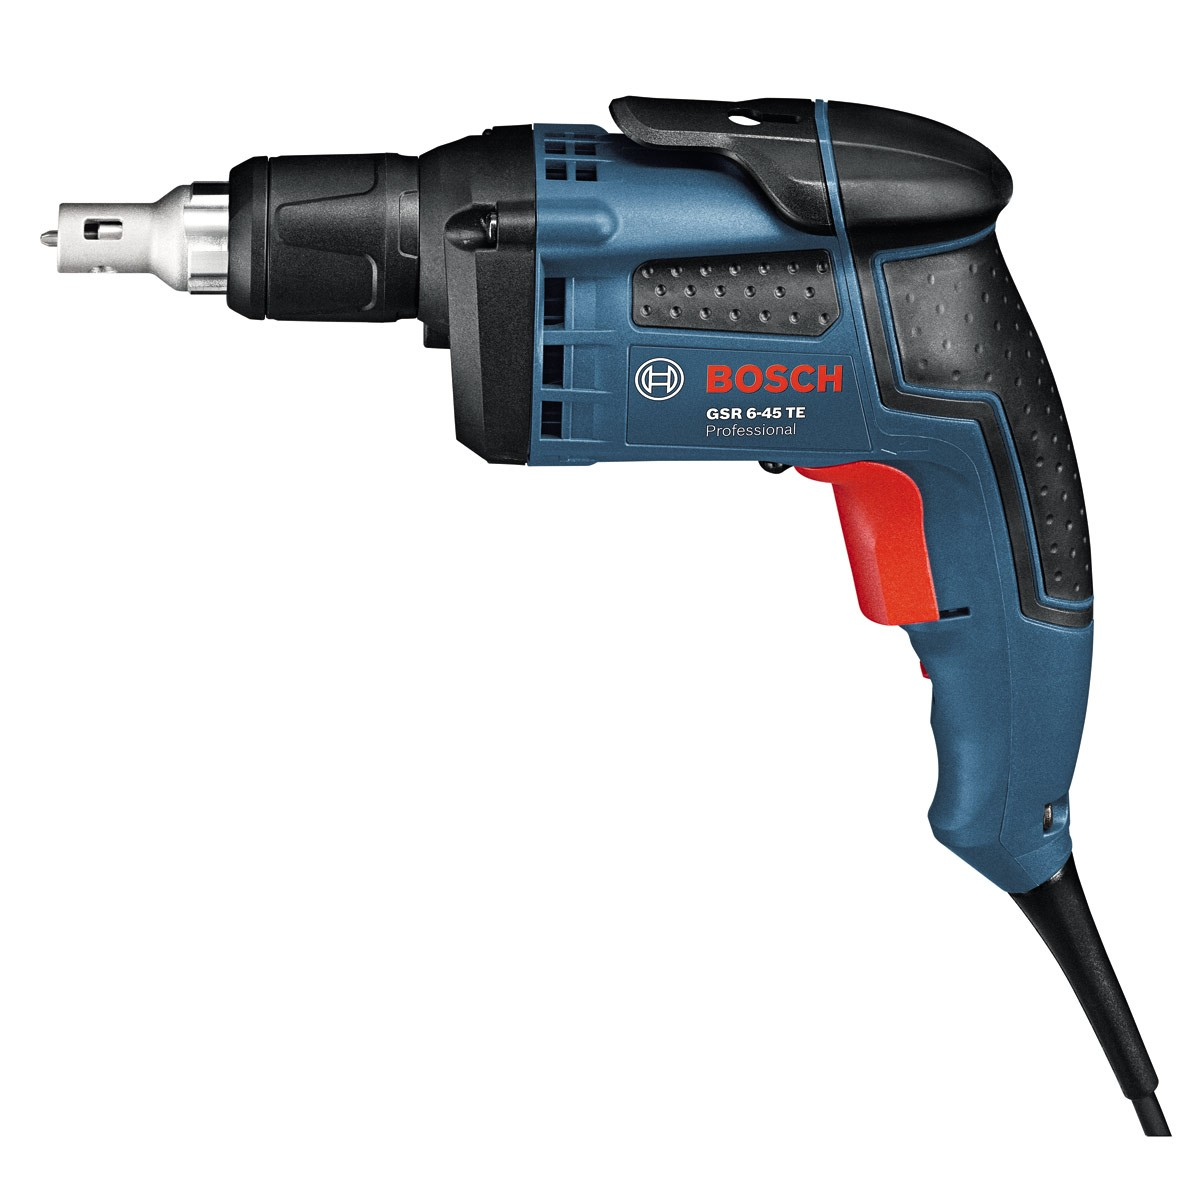 bosch gsr 6 45 te professional drywall screwdriver powertool world. Black Bedroom Furniture Sets. Home Design Ideas